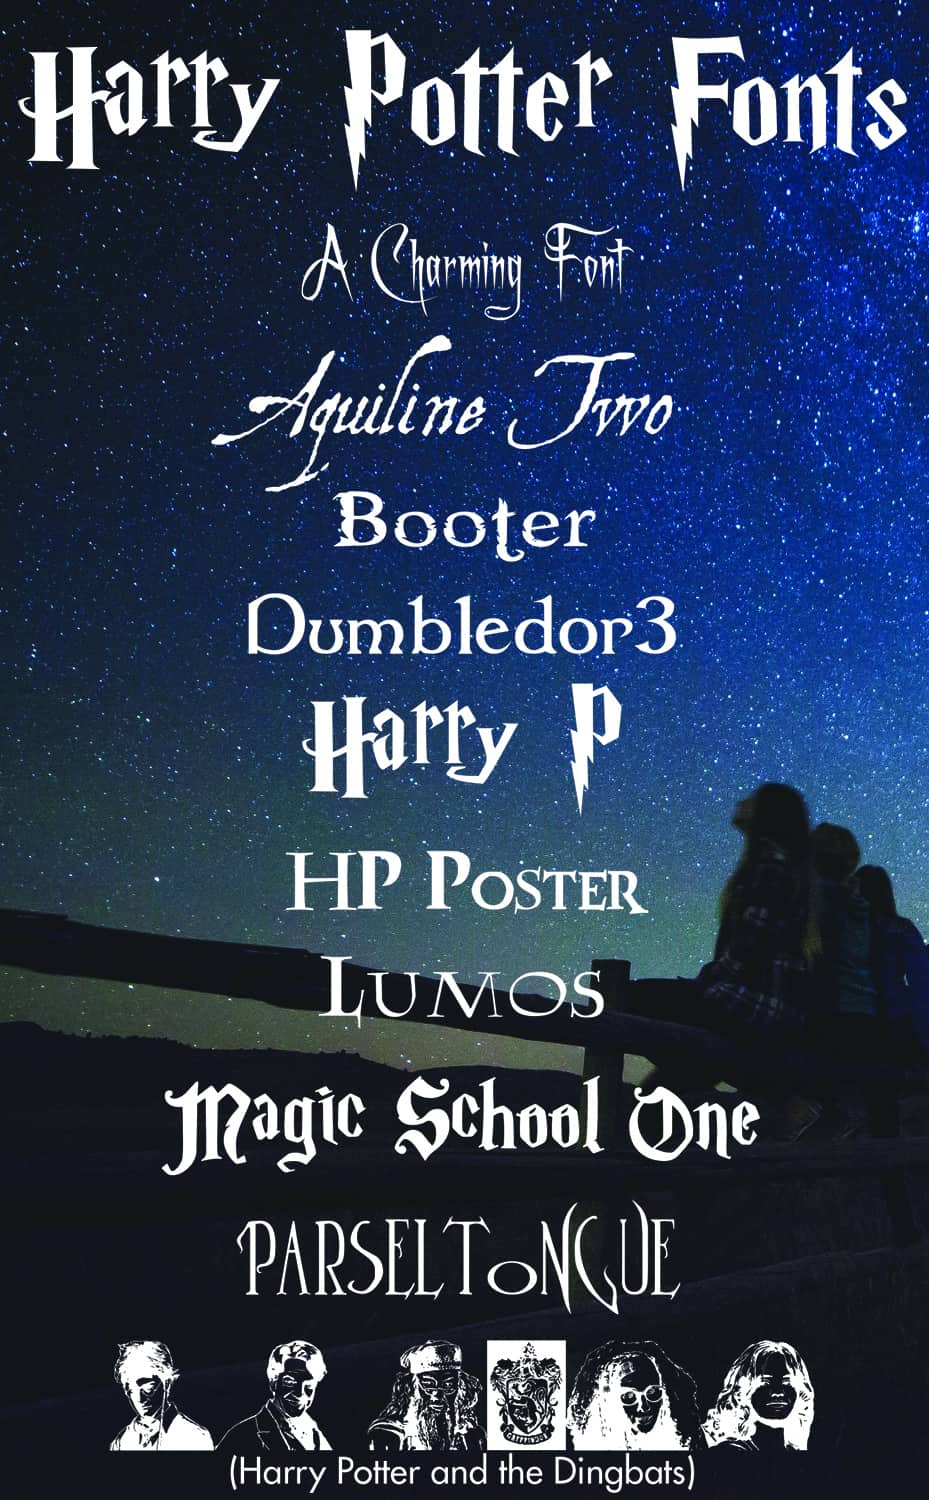 Links to free Harry Potter free fonts